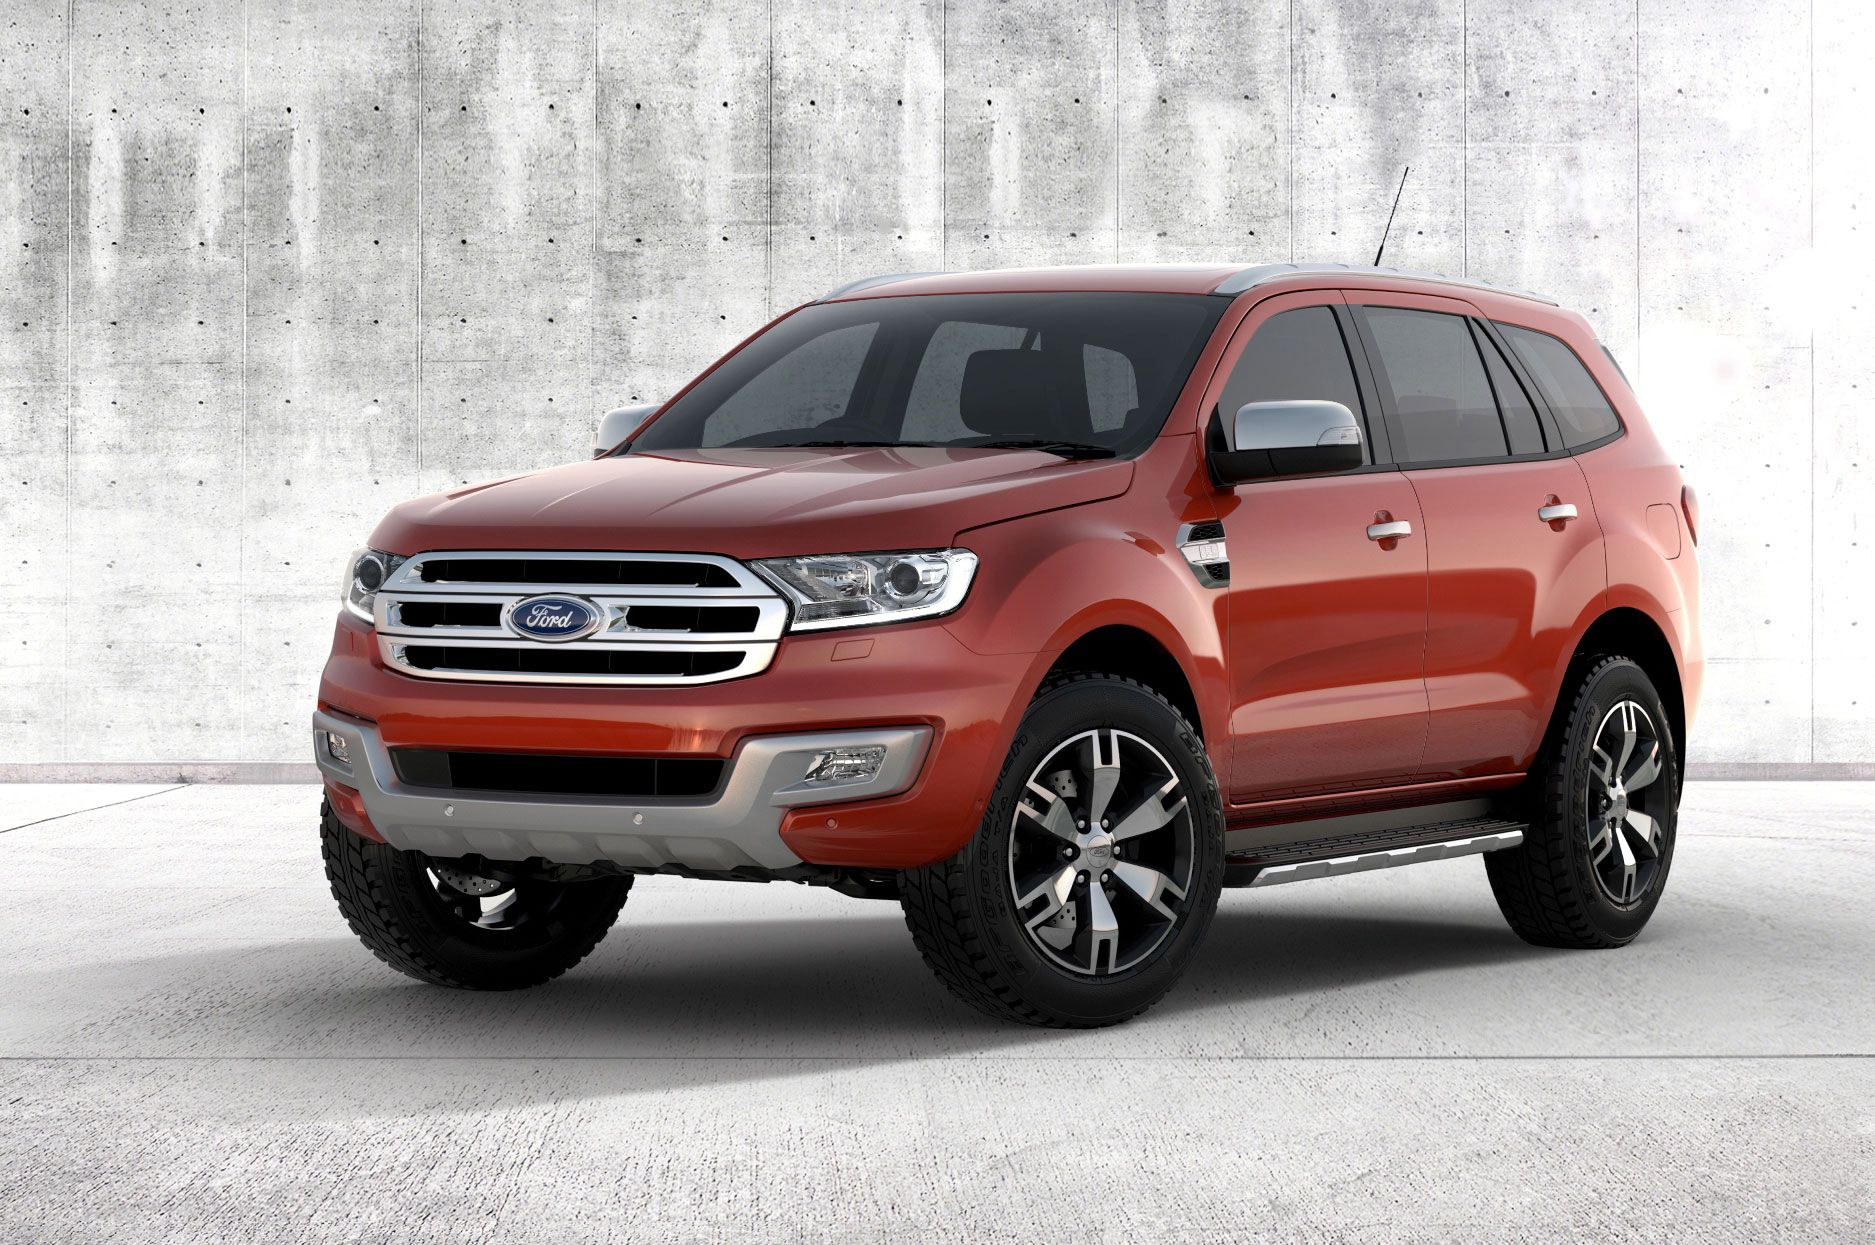 2016 ford everest release date australia 2016 ford everest is one of the ford s suvs sold outside america just in spite of the fact that there were a few